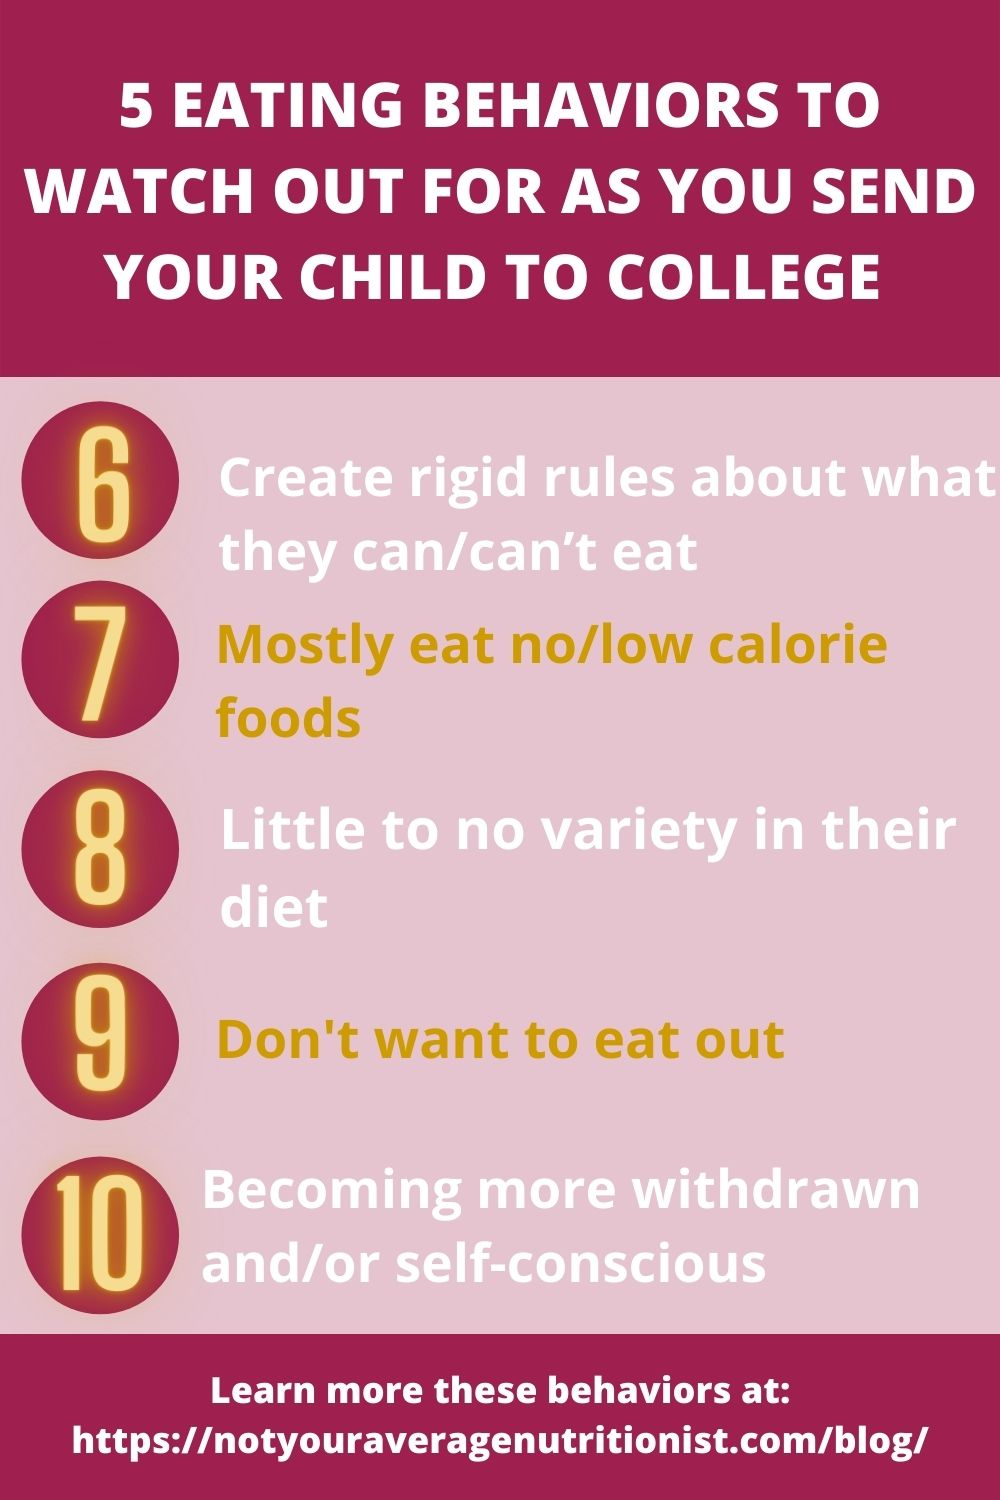 behaviors to watch out for as your child goes off to college